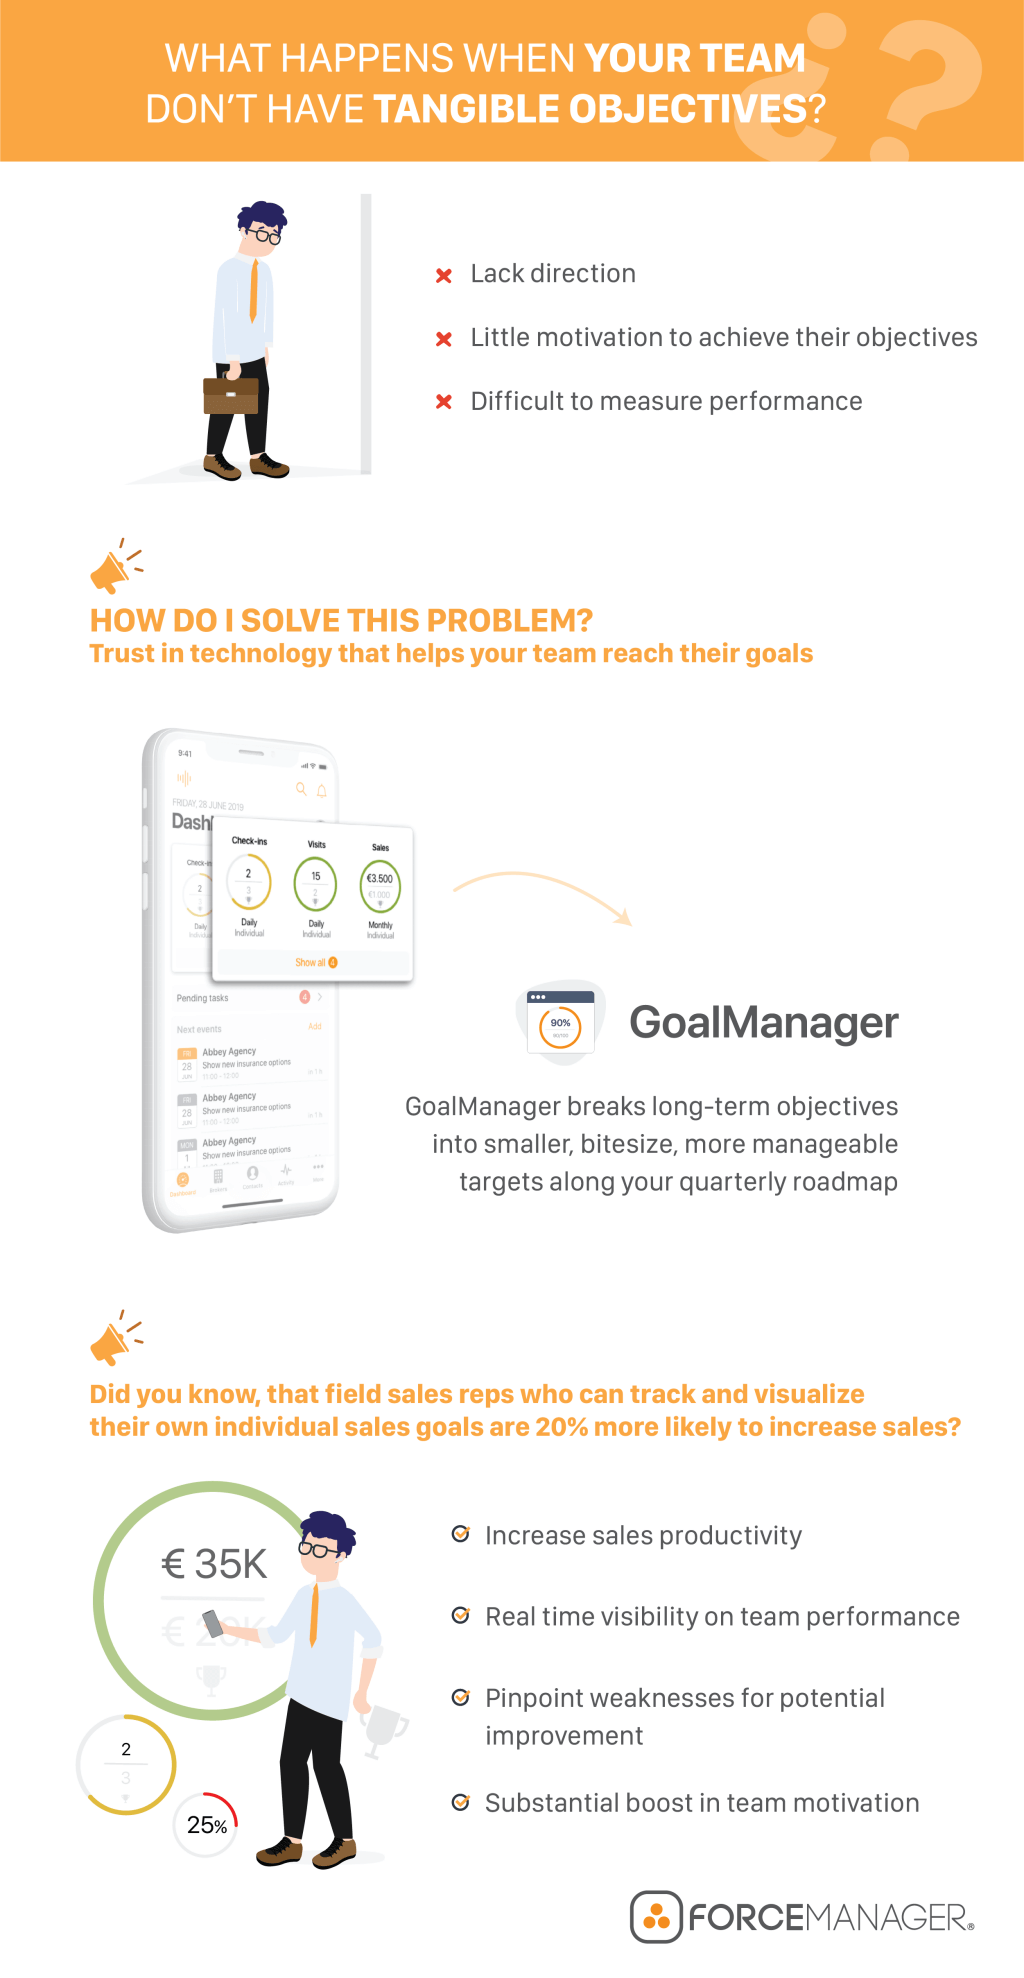 goalmanager and coaching